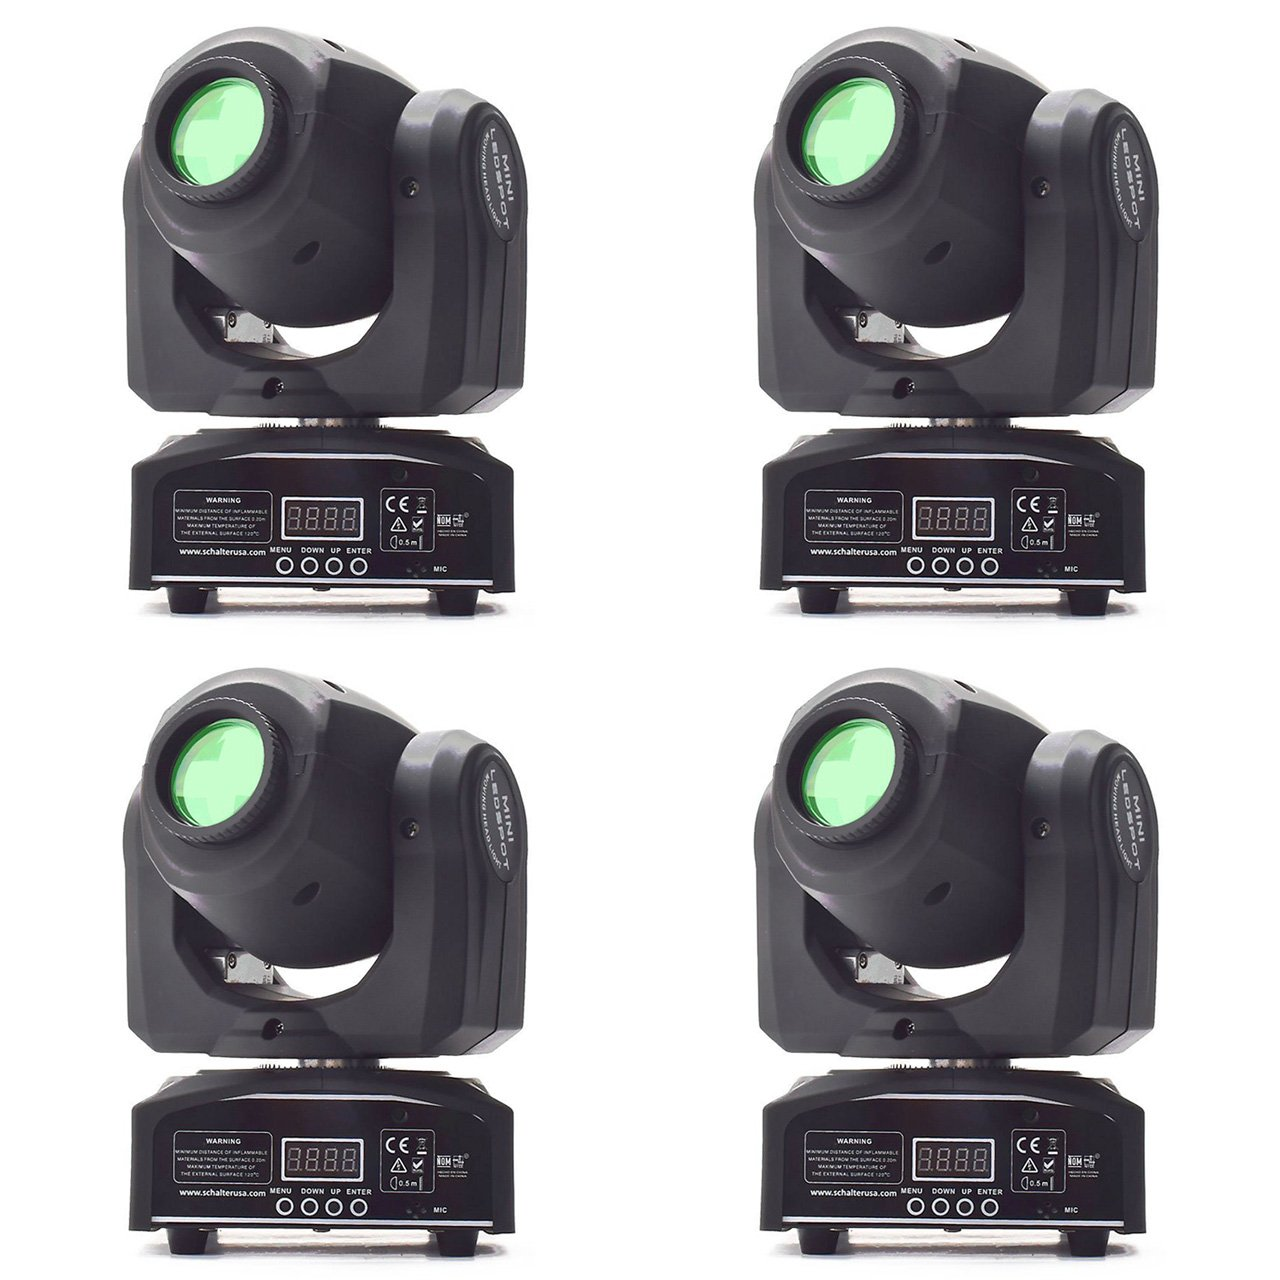 Eyourlife 4Pcs 10W LED Patterns DJ Stage Moving Head Light DMX512 Auto Stop For Club Party Show Lighting by Eyourlife